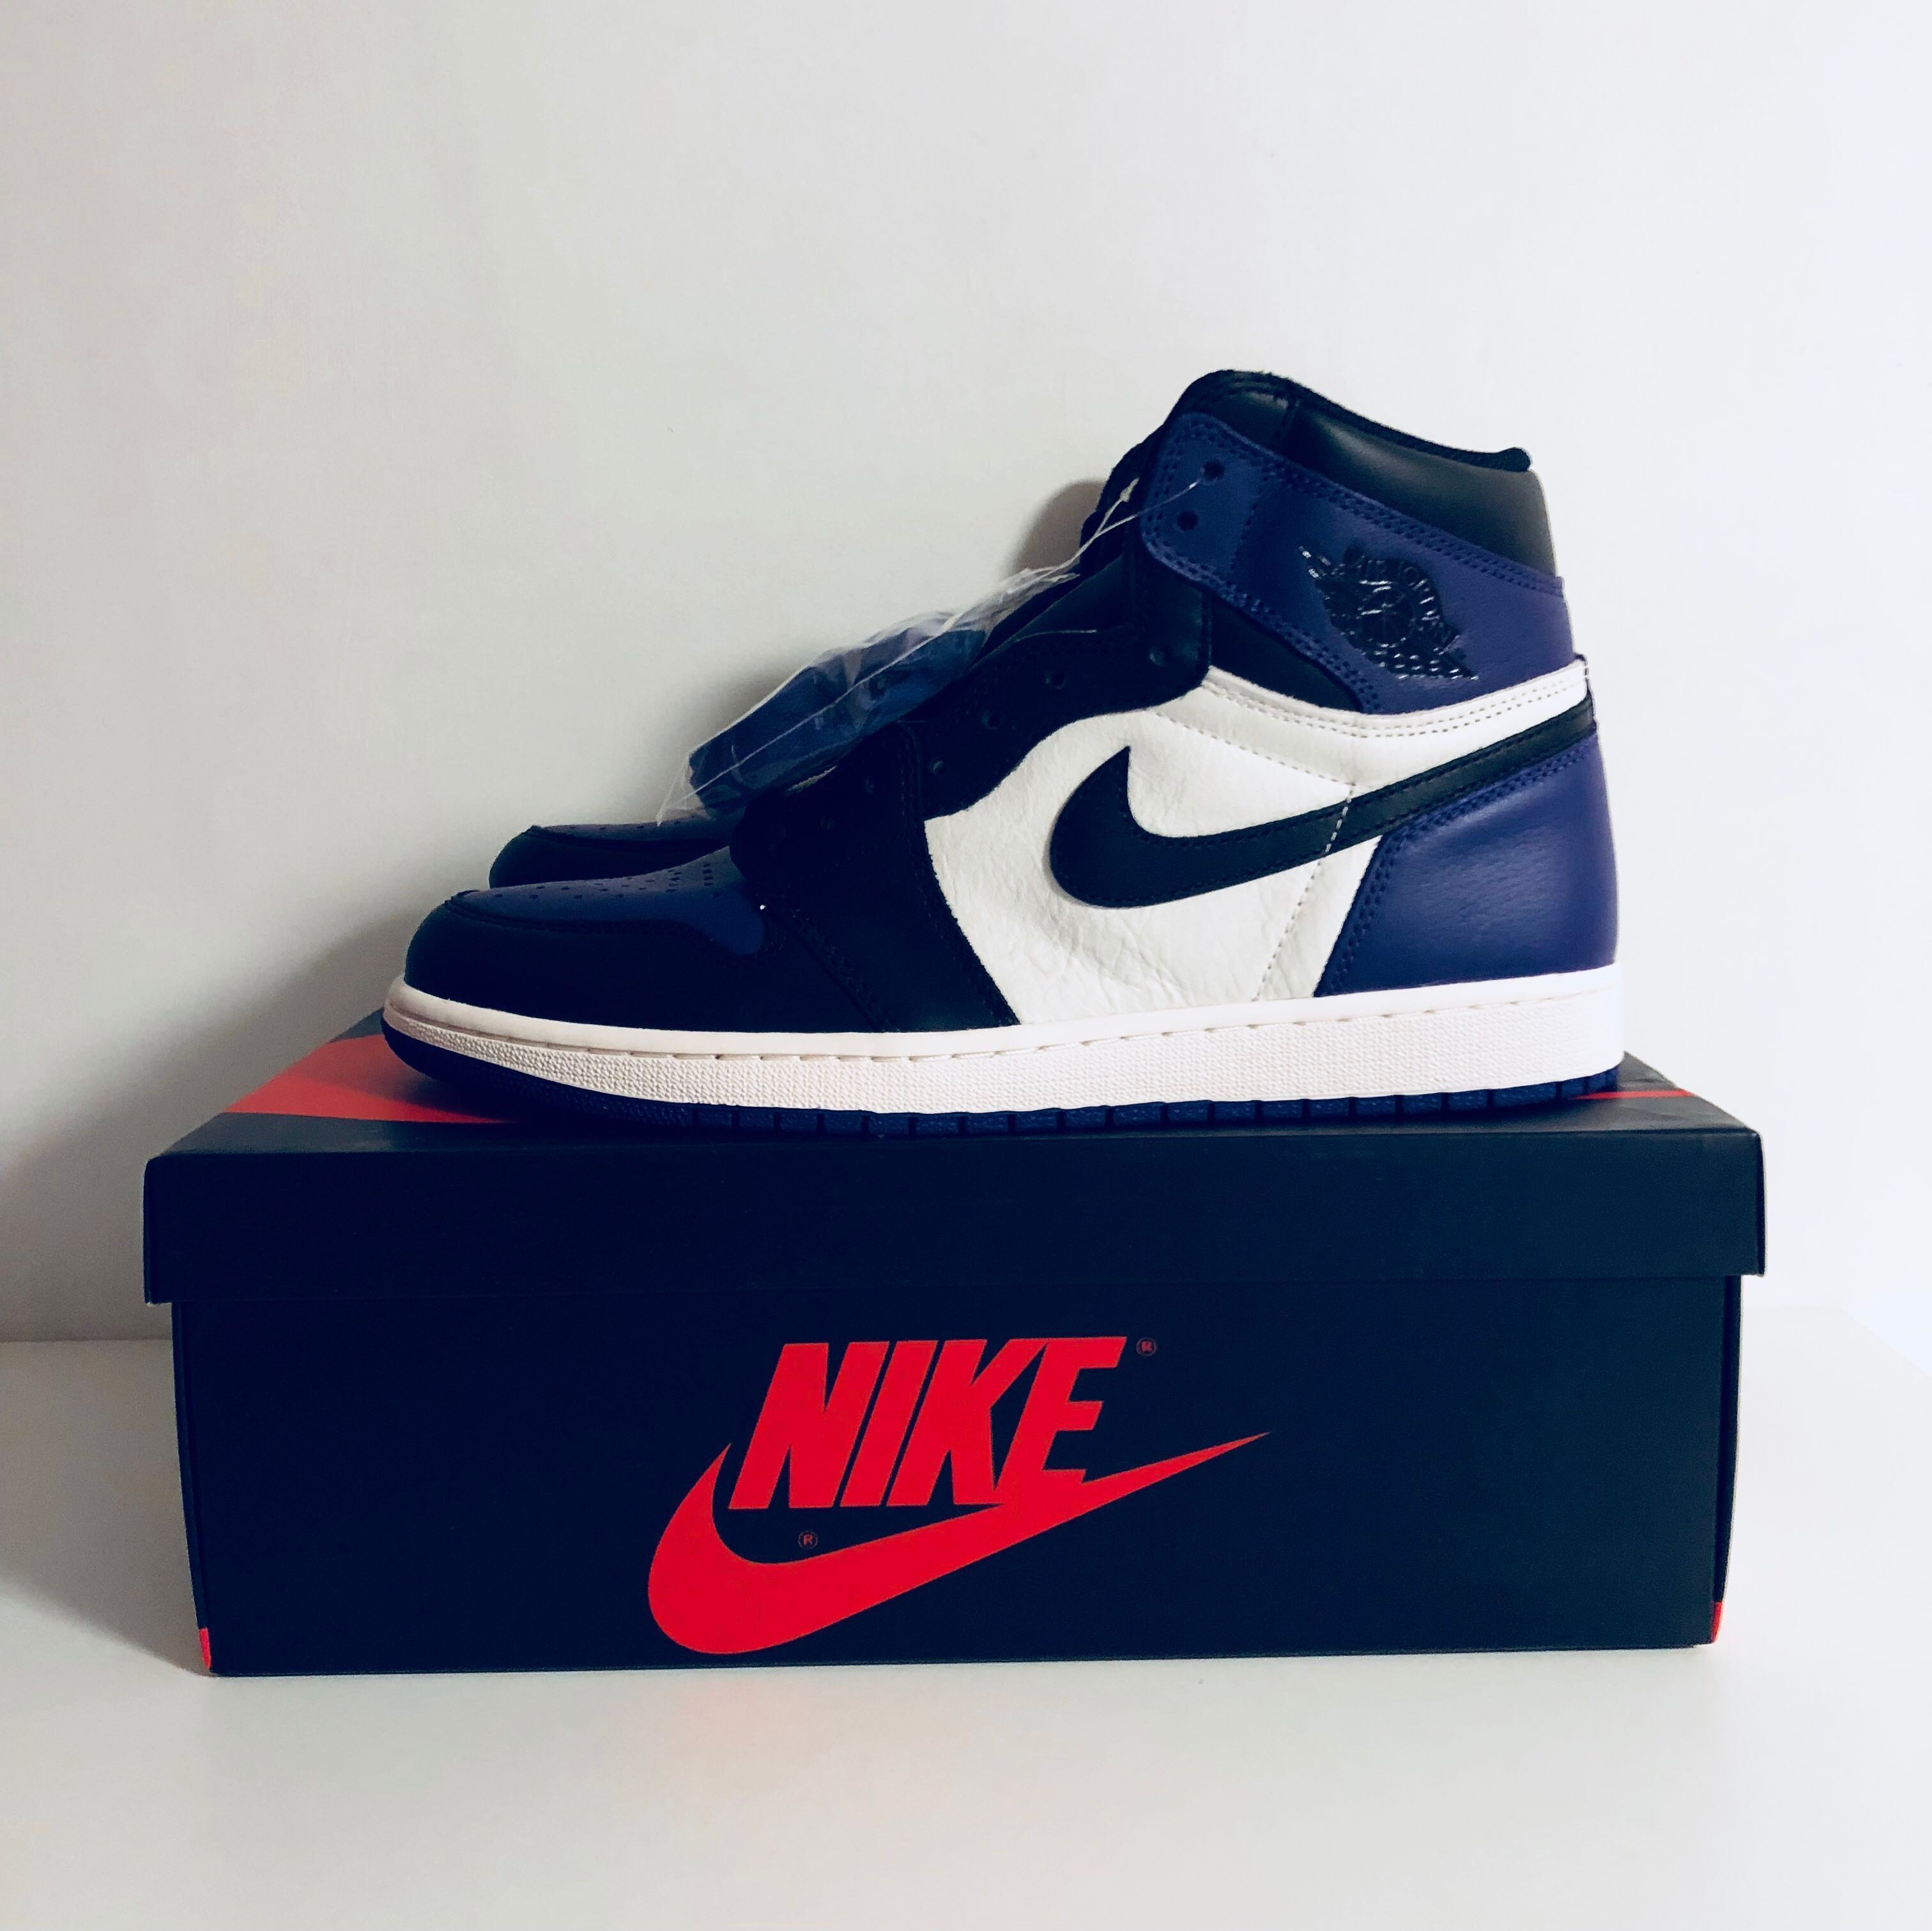 official photos a4ea0 f63f0 Home · Men s Fashion · Footwear · Sneakers. photo photo photo